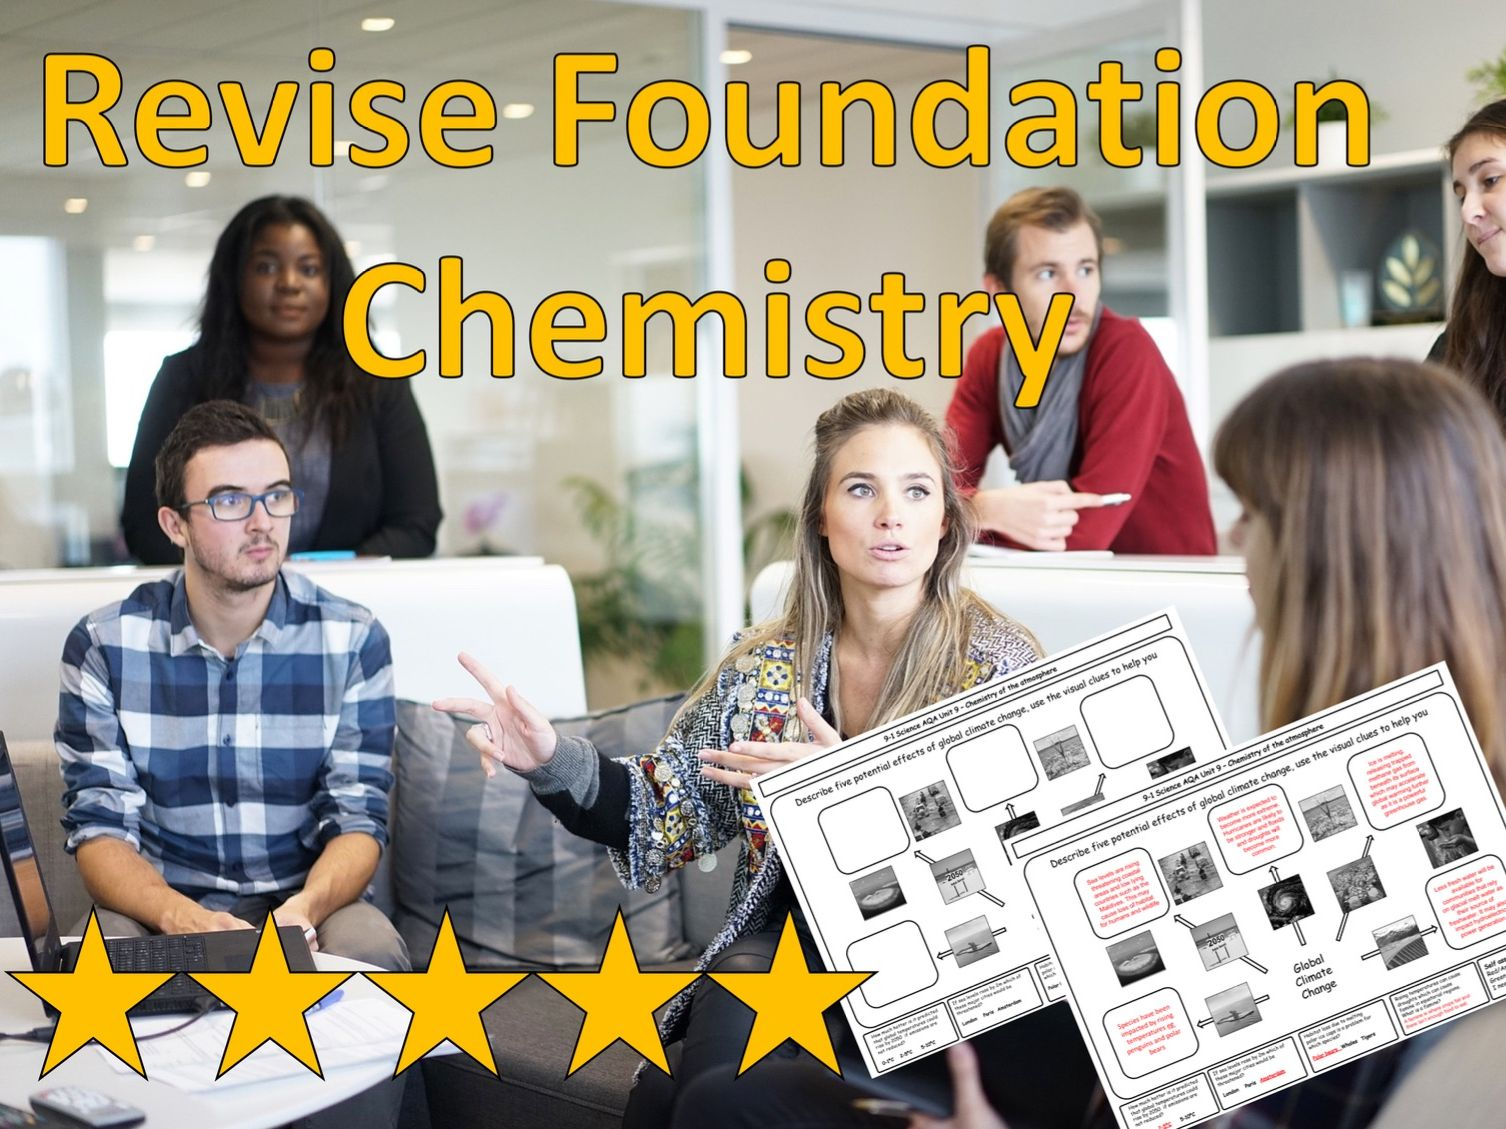 AQA GCSE Revision Mat Bundle for FOUNDATION TIER Combined Science Chemistry. Now with answer grids!